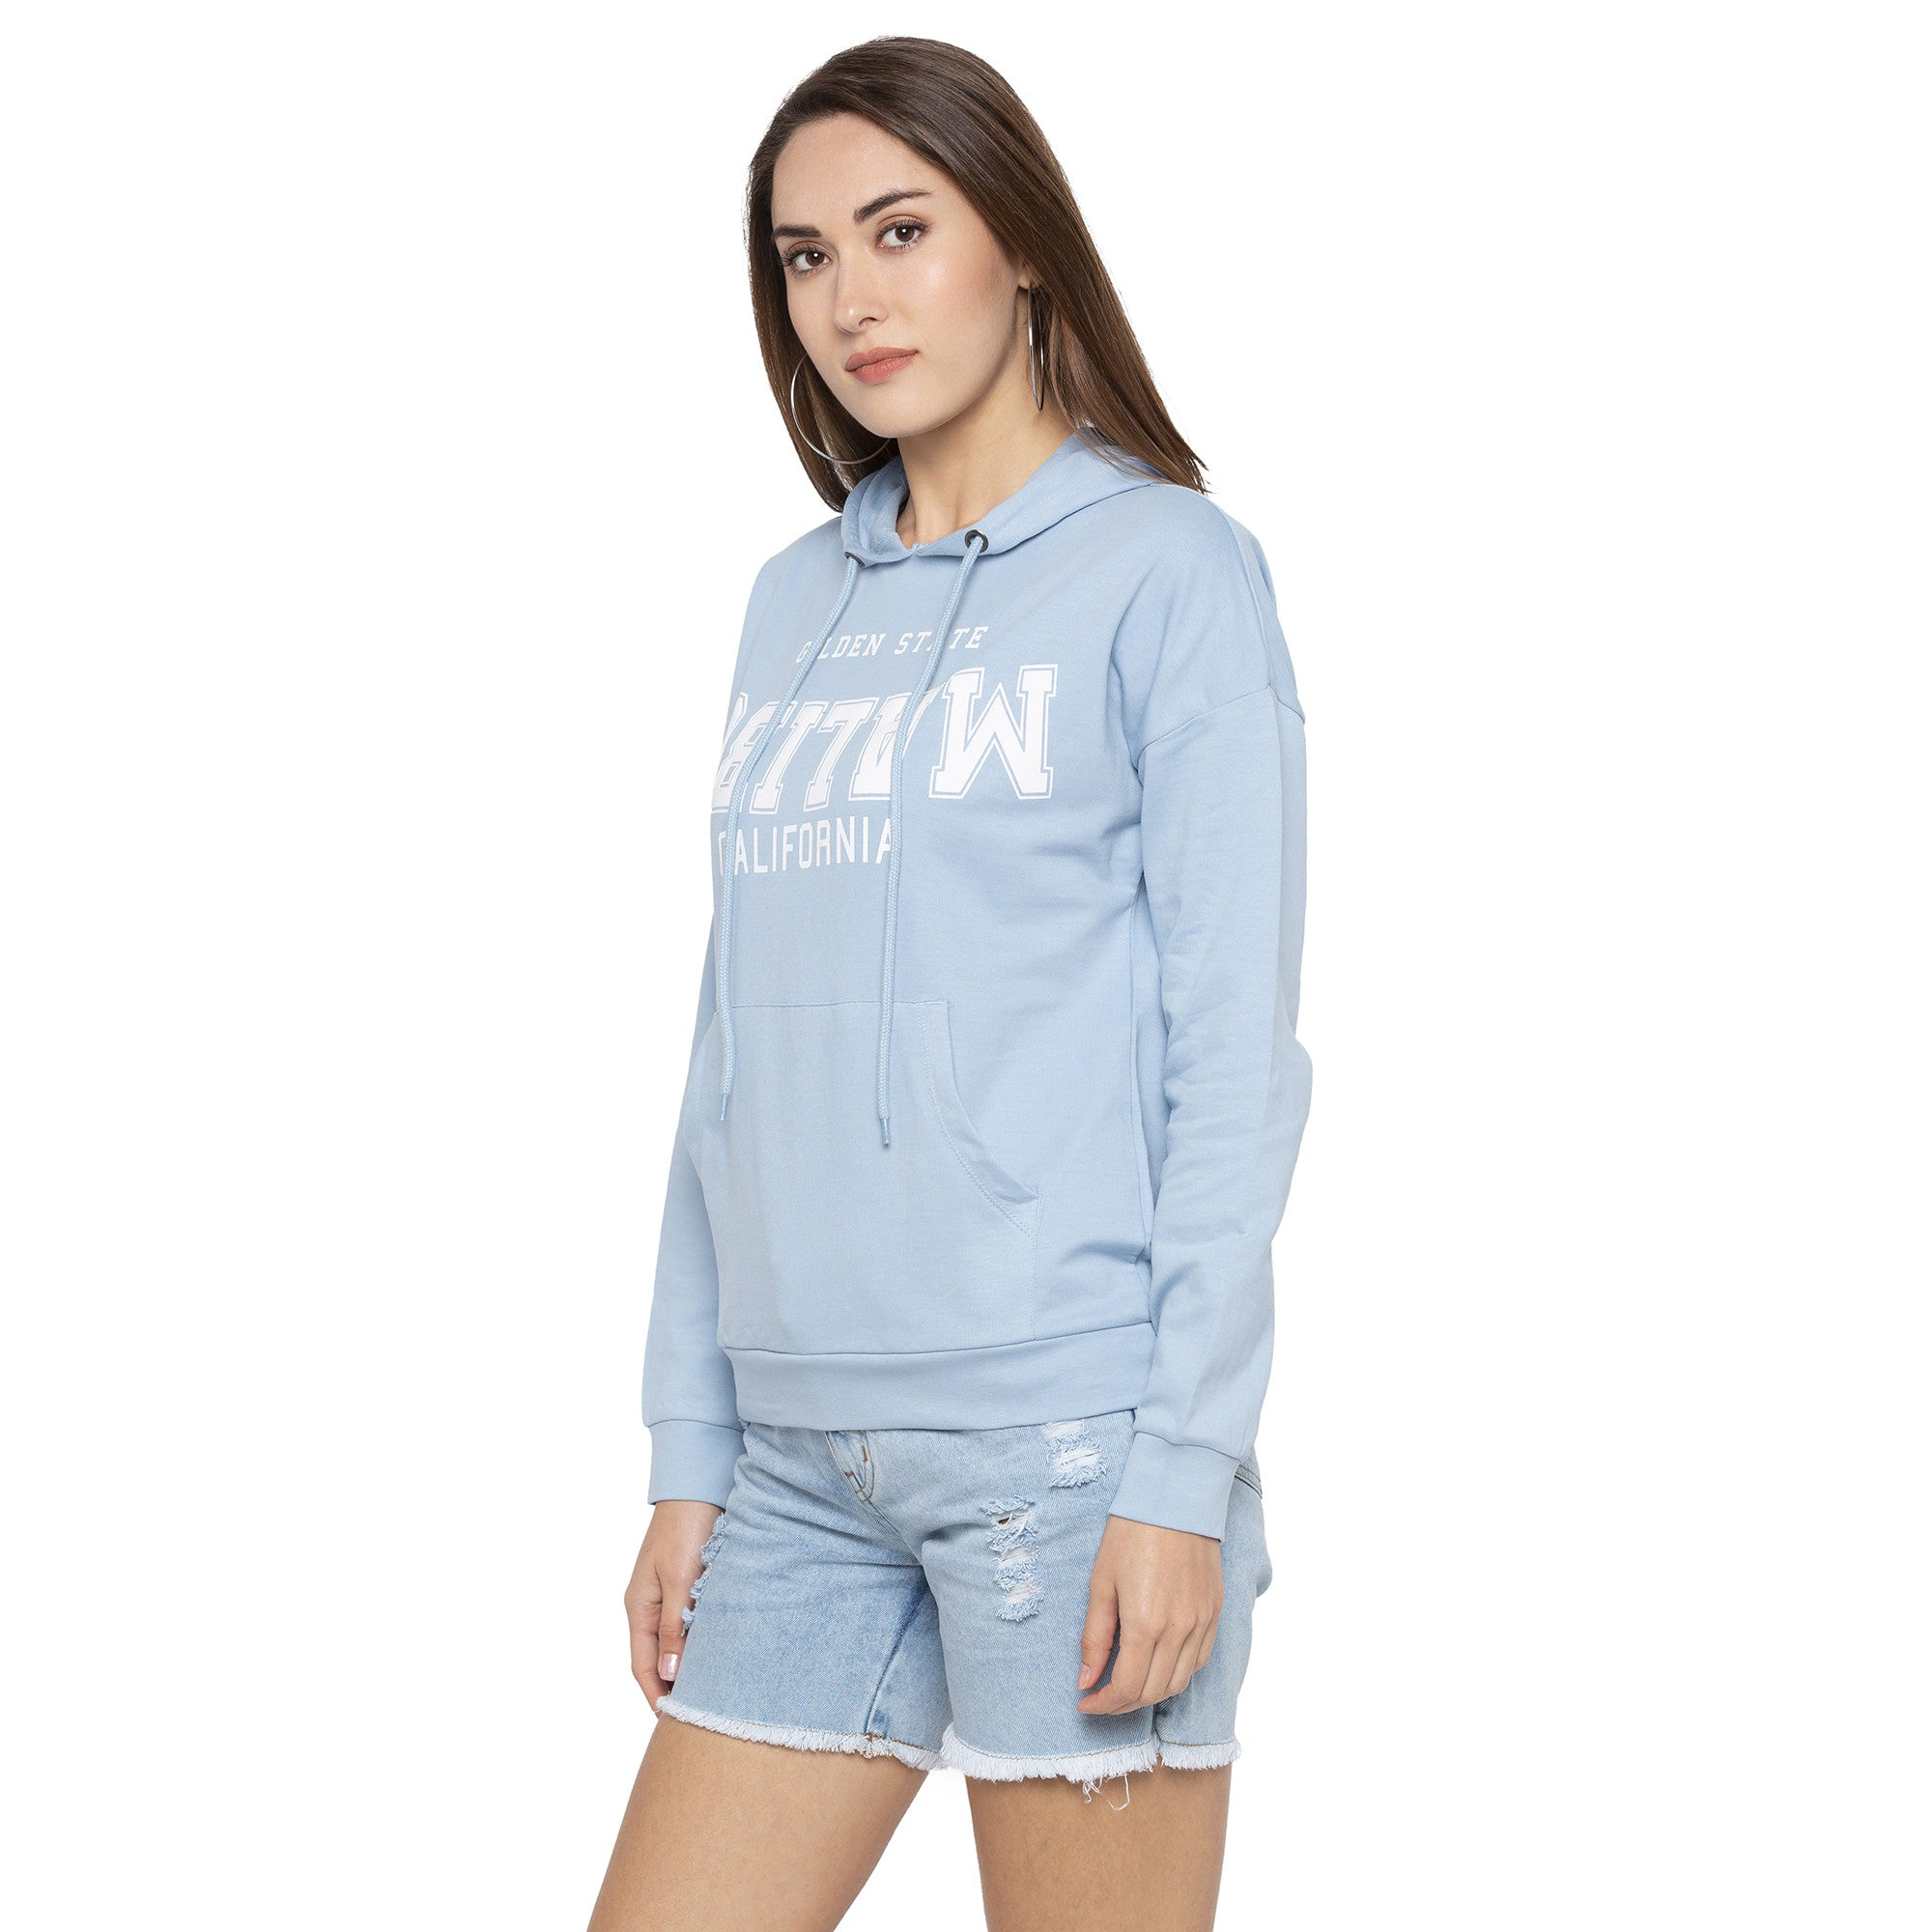 Casual Blue Color Self Design Hooded Sweatshirt-2